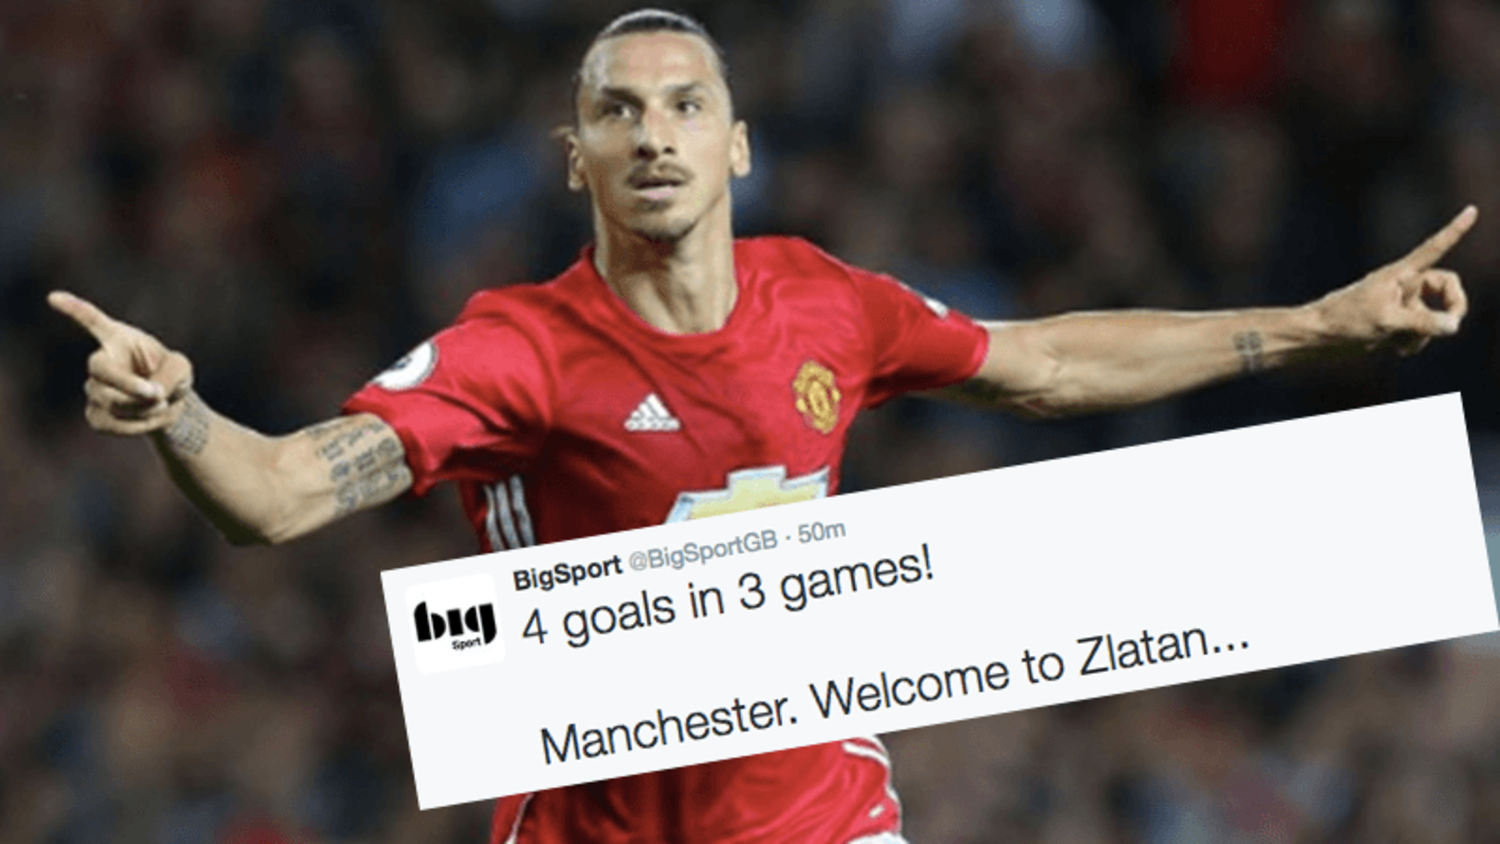 How the internet reacted to the 'Zlatan Show' during Man United vs Southampton